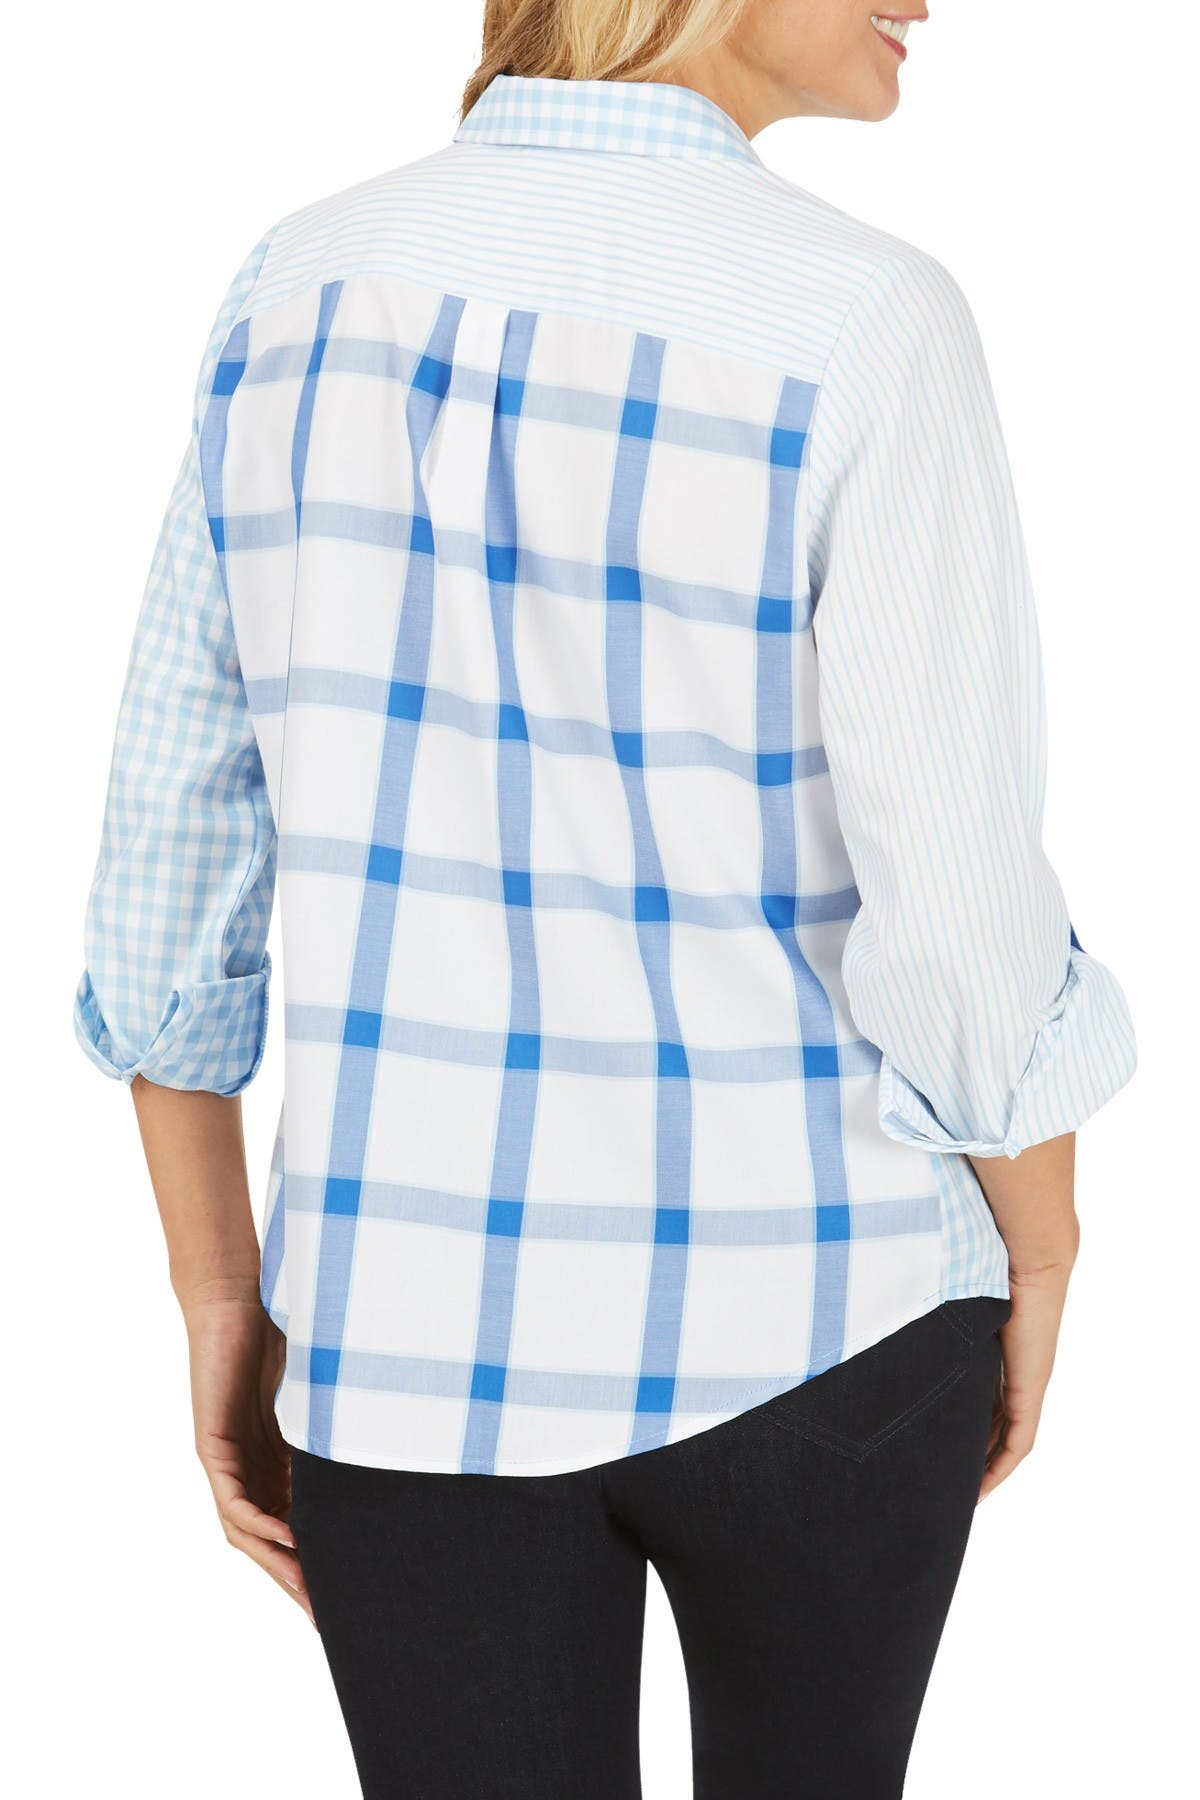 Image of FOXCROFT Hampton Non-Iron Pattern Play Shirt